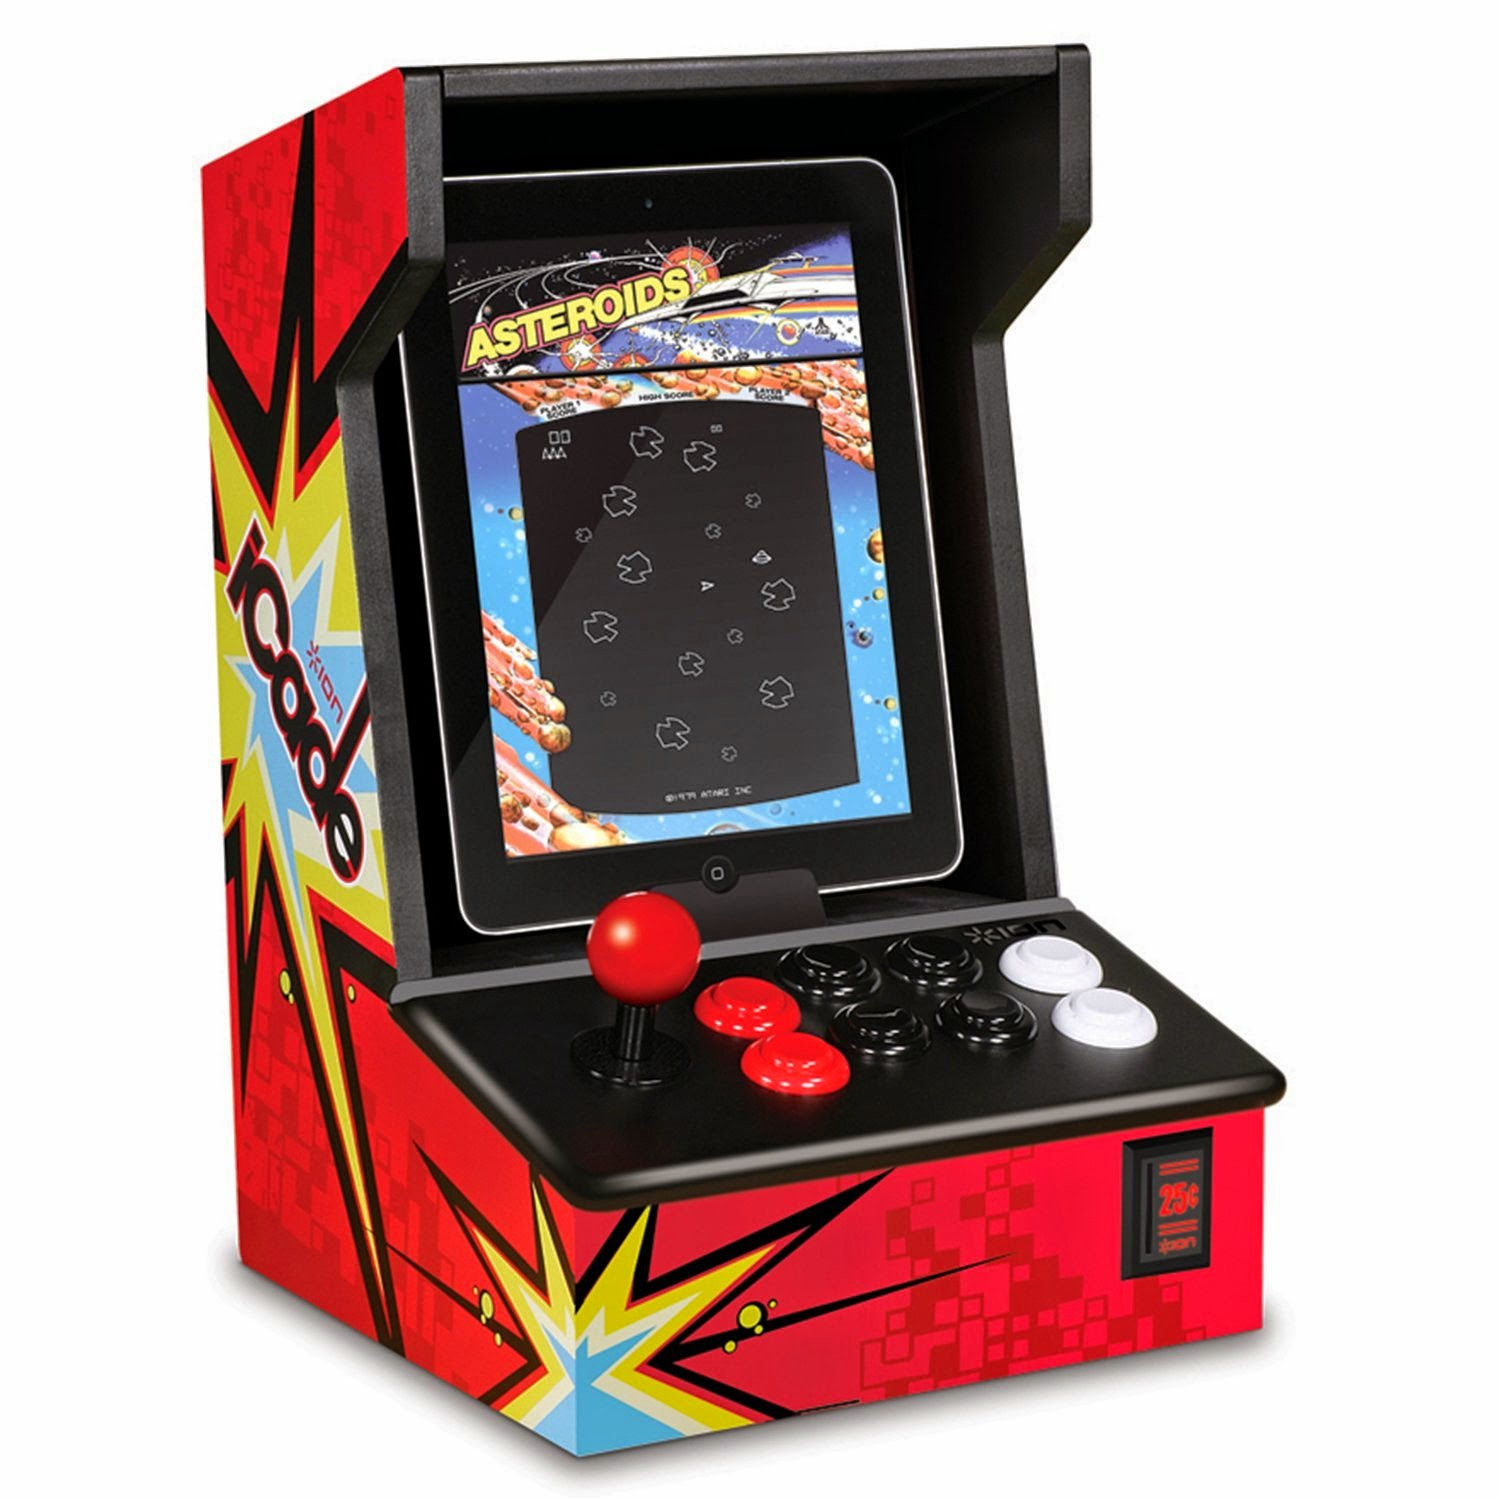 Are you a child of the 80s?  Did you dream of having a Pac Man game at home?  Now you can go old school with your own Arcade cabinet for your iPad!